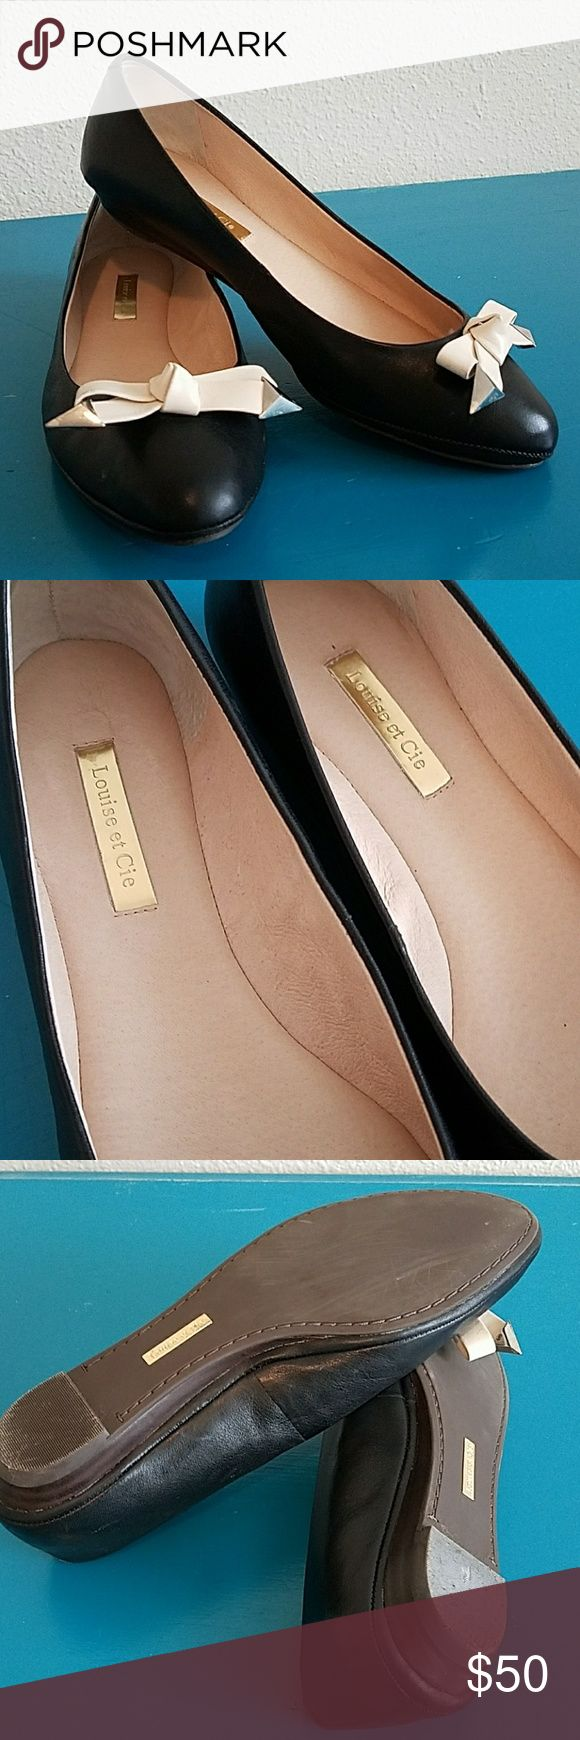 Louise et Cie black leather flats Black Leather flats with white leather bow and silver accents. Normal/ light wear. Make an offer! Louise et Cie Shoes Flats & Loafers